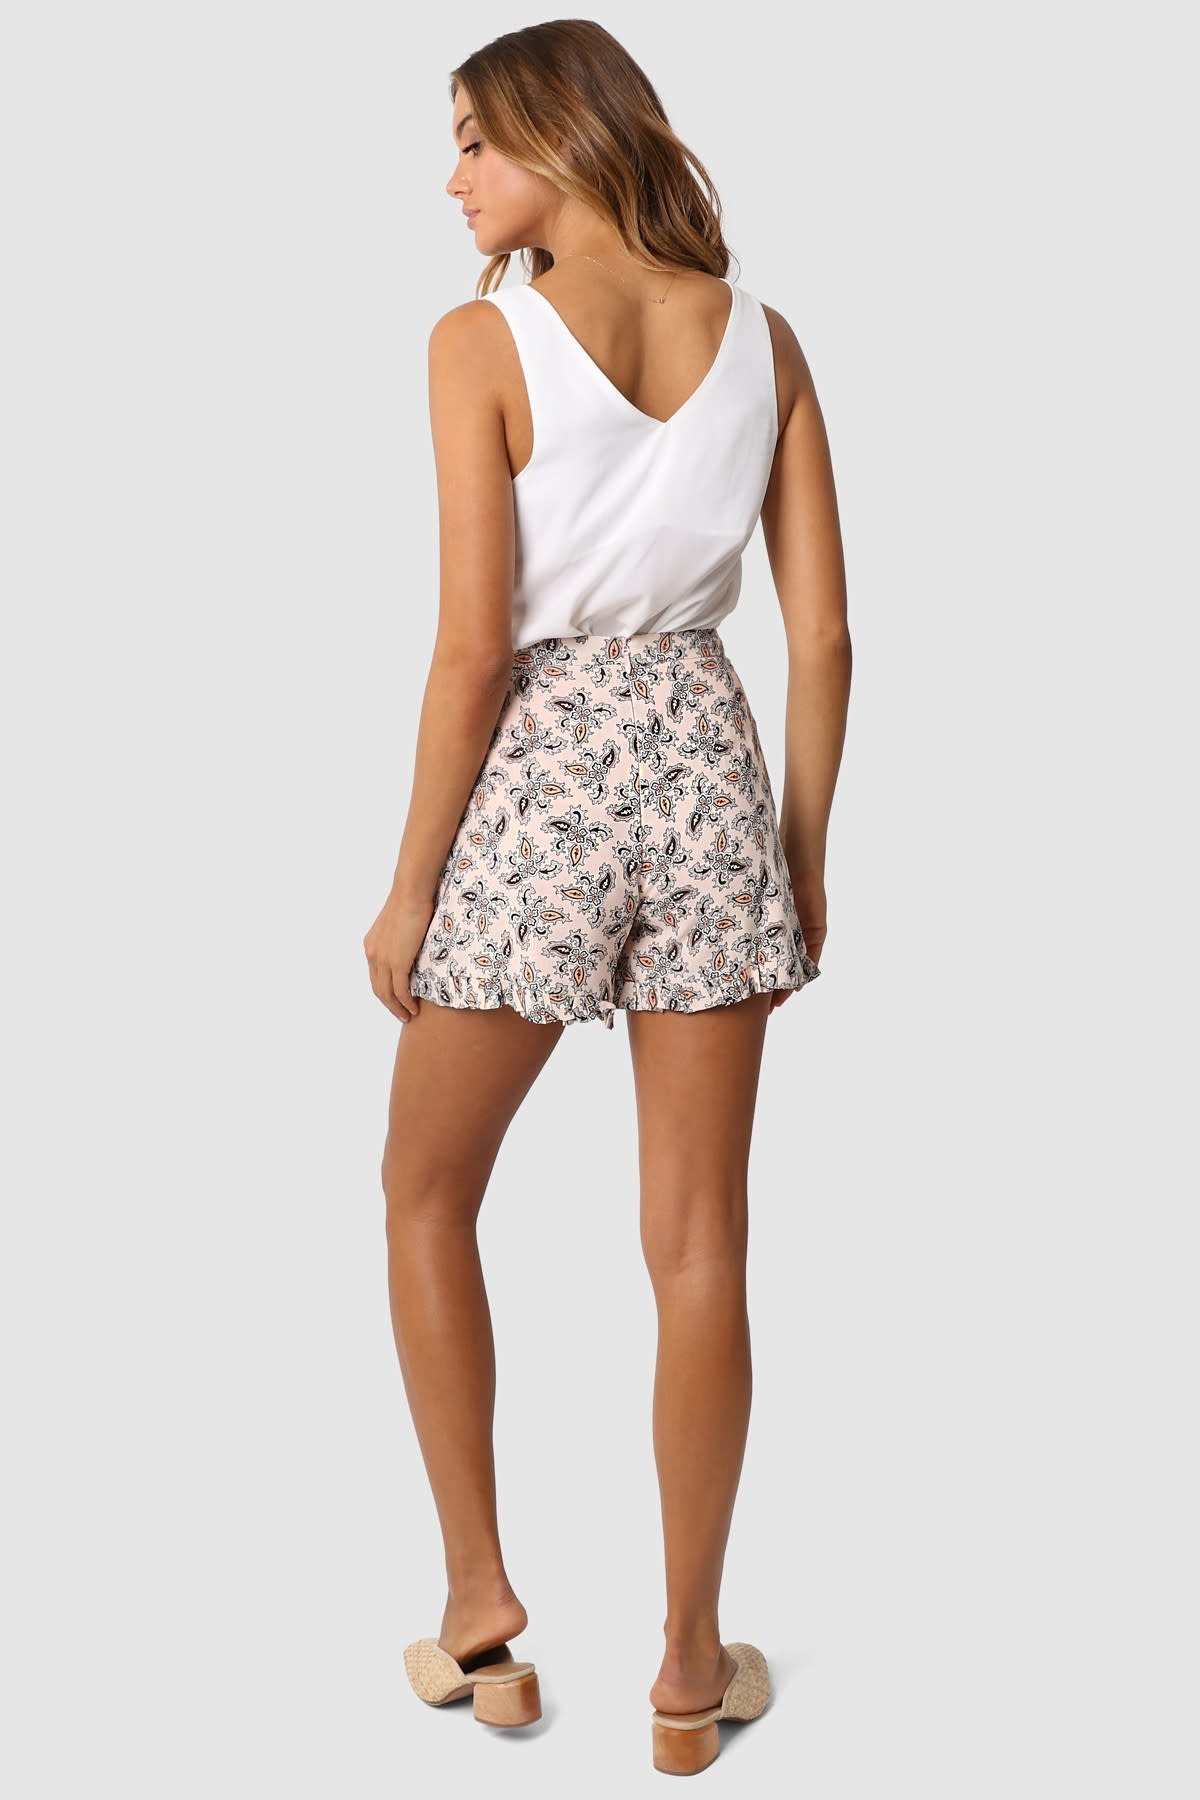 "LOST IN LUNAR LOST IN LUNAR L0158 ""ROXY"" Paisley Shorts"